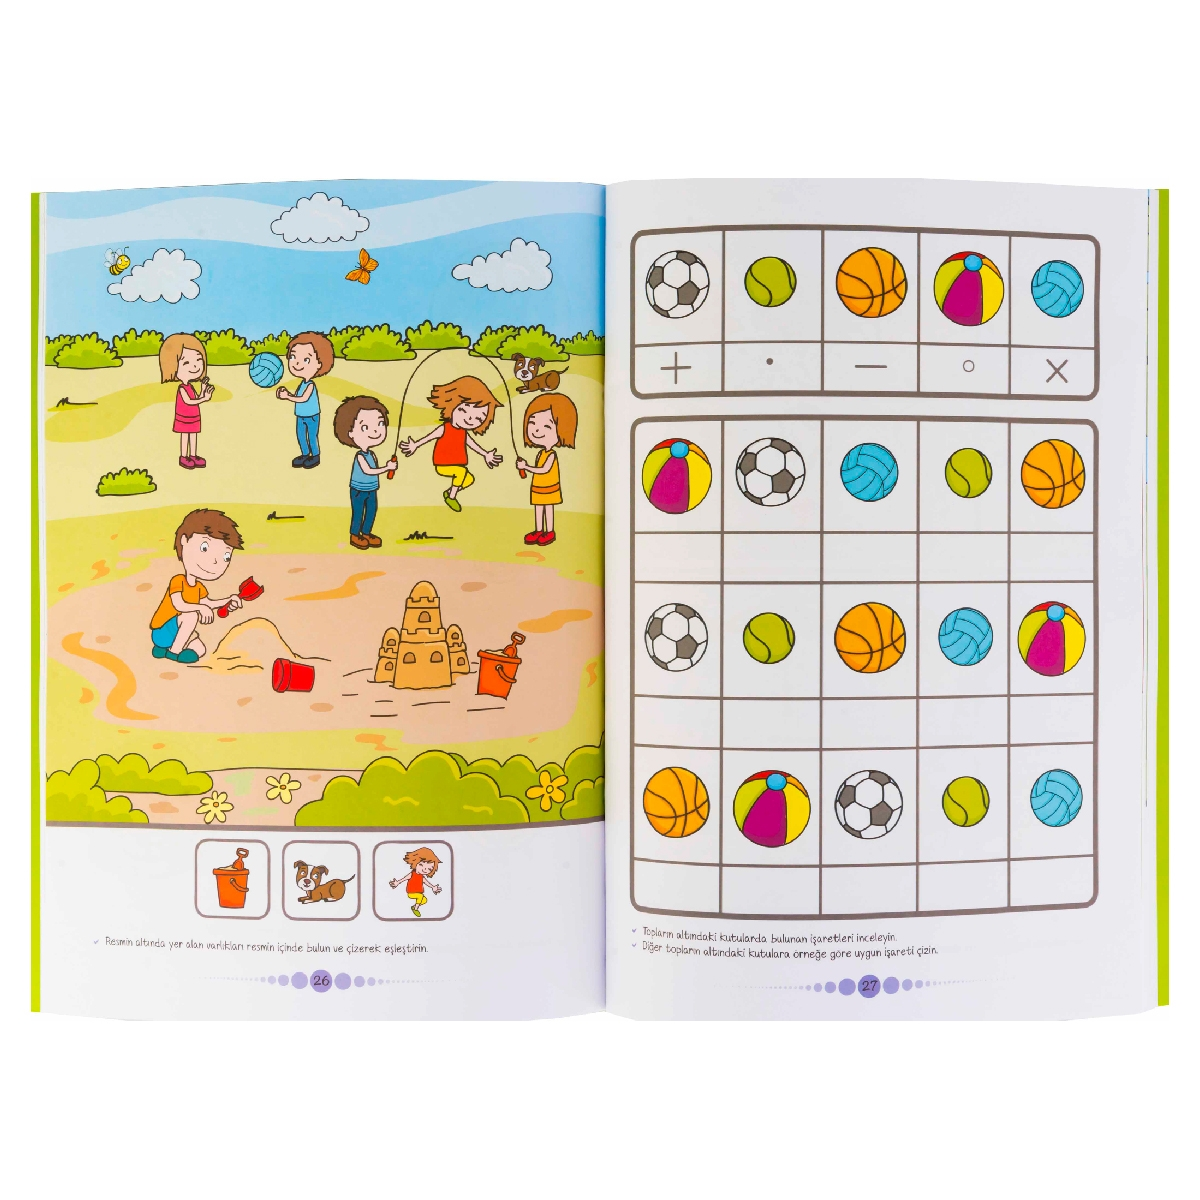 Improving Attention Skills with Activities for 3+ Age Group